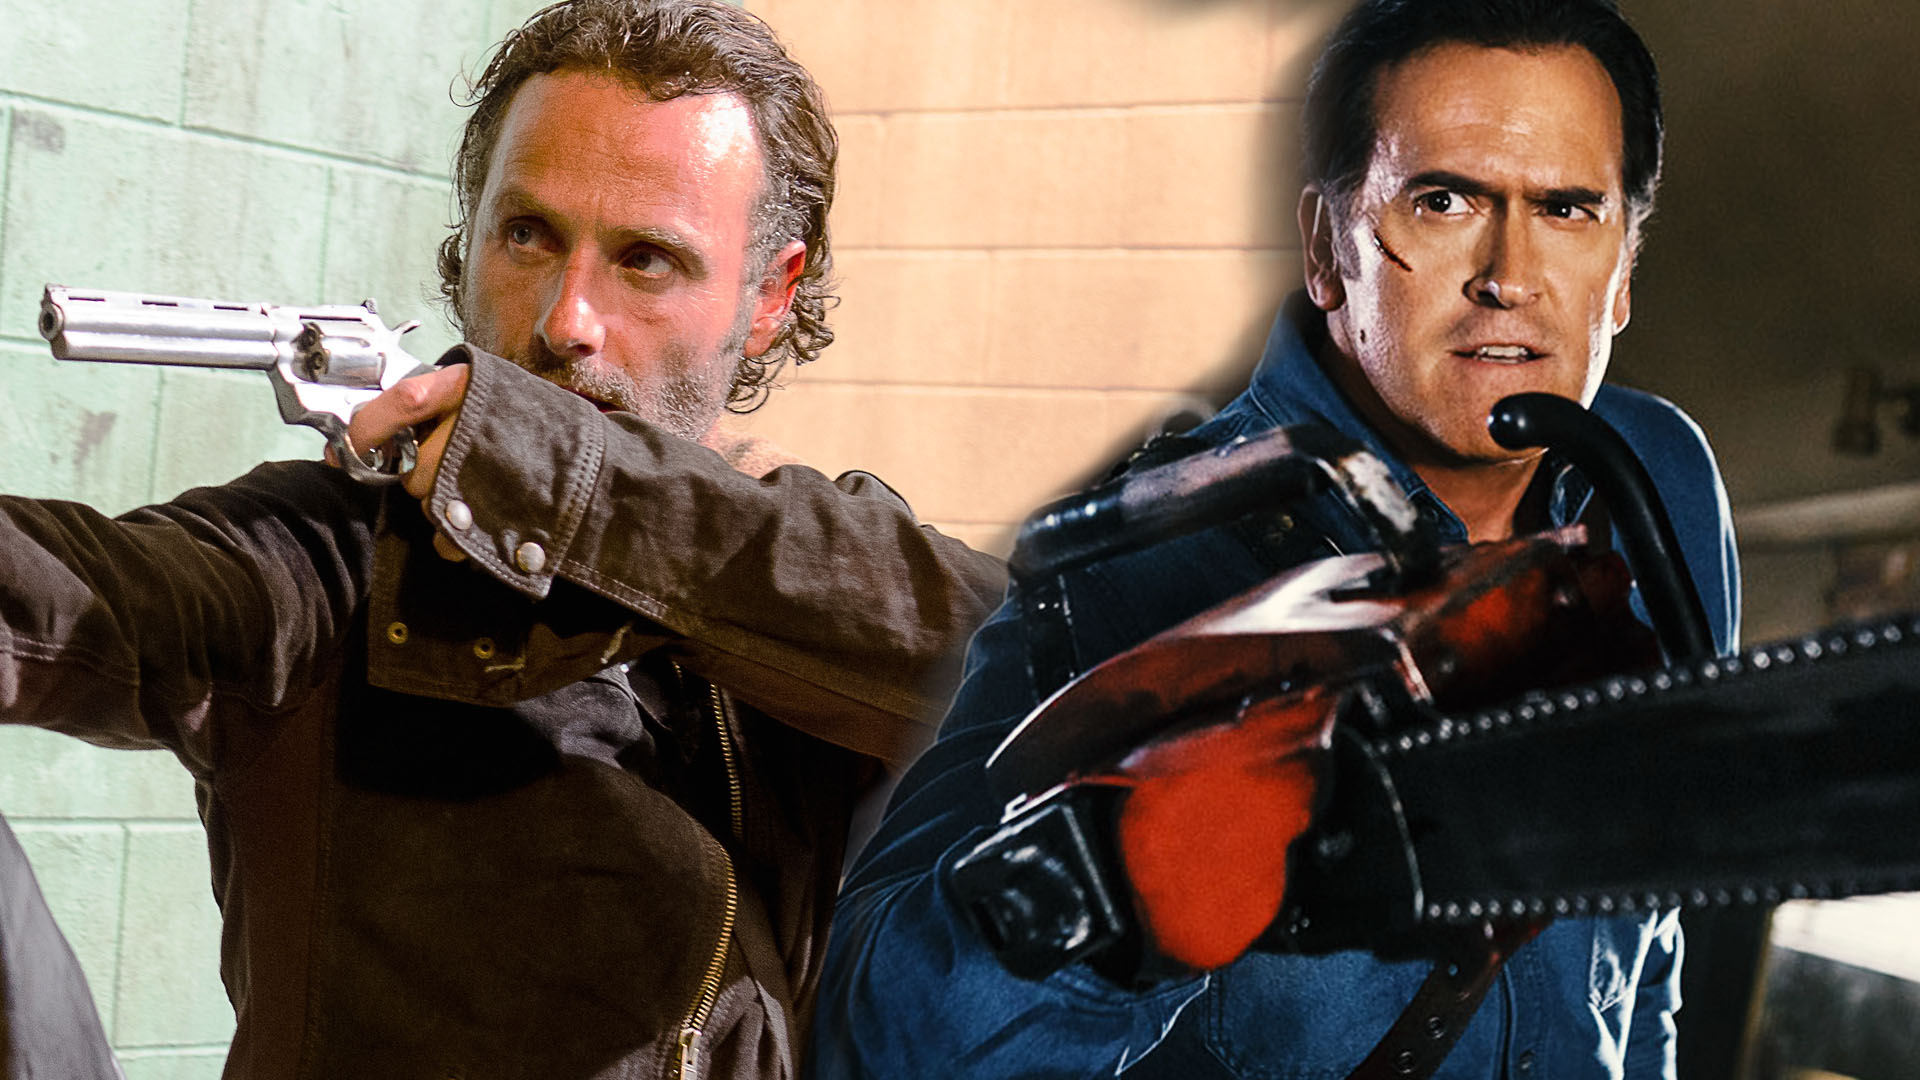 Walking Dead Vs Evil Dead Could Rick Grimes Beat Ash Williams In A Fight Variety